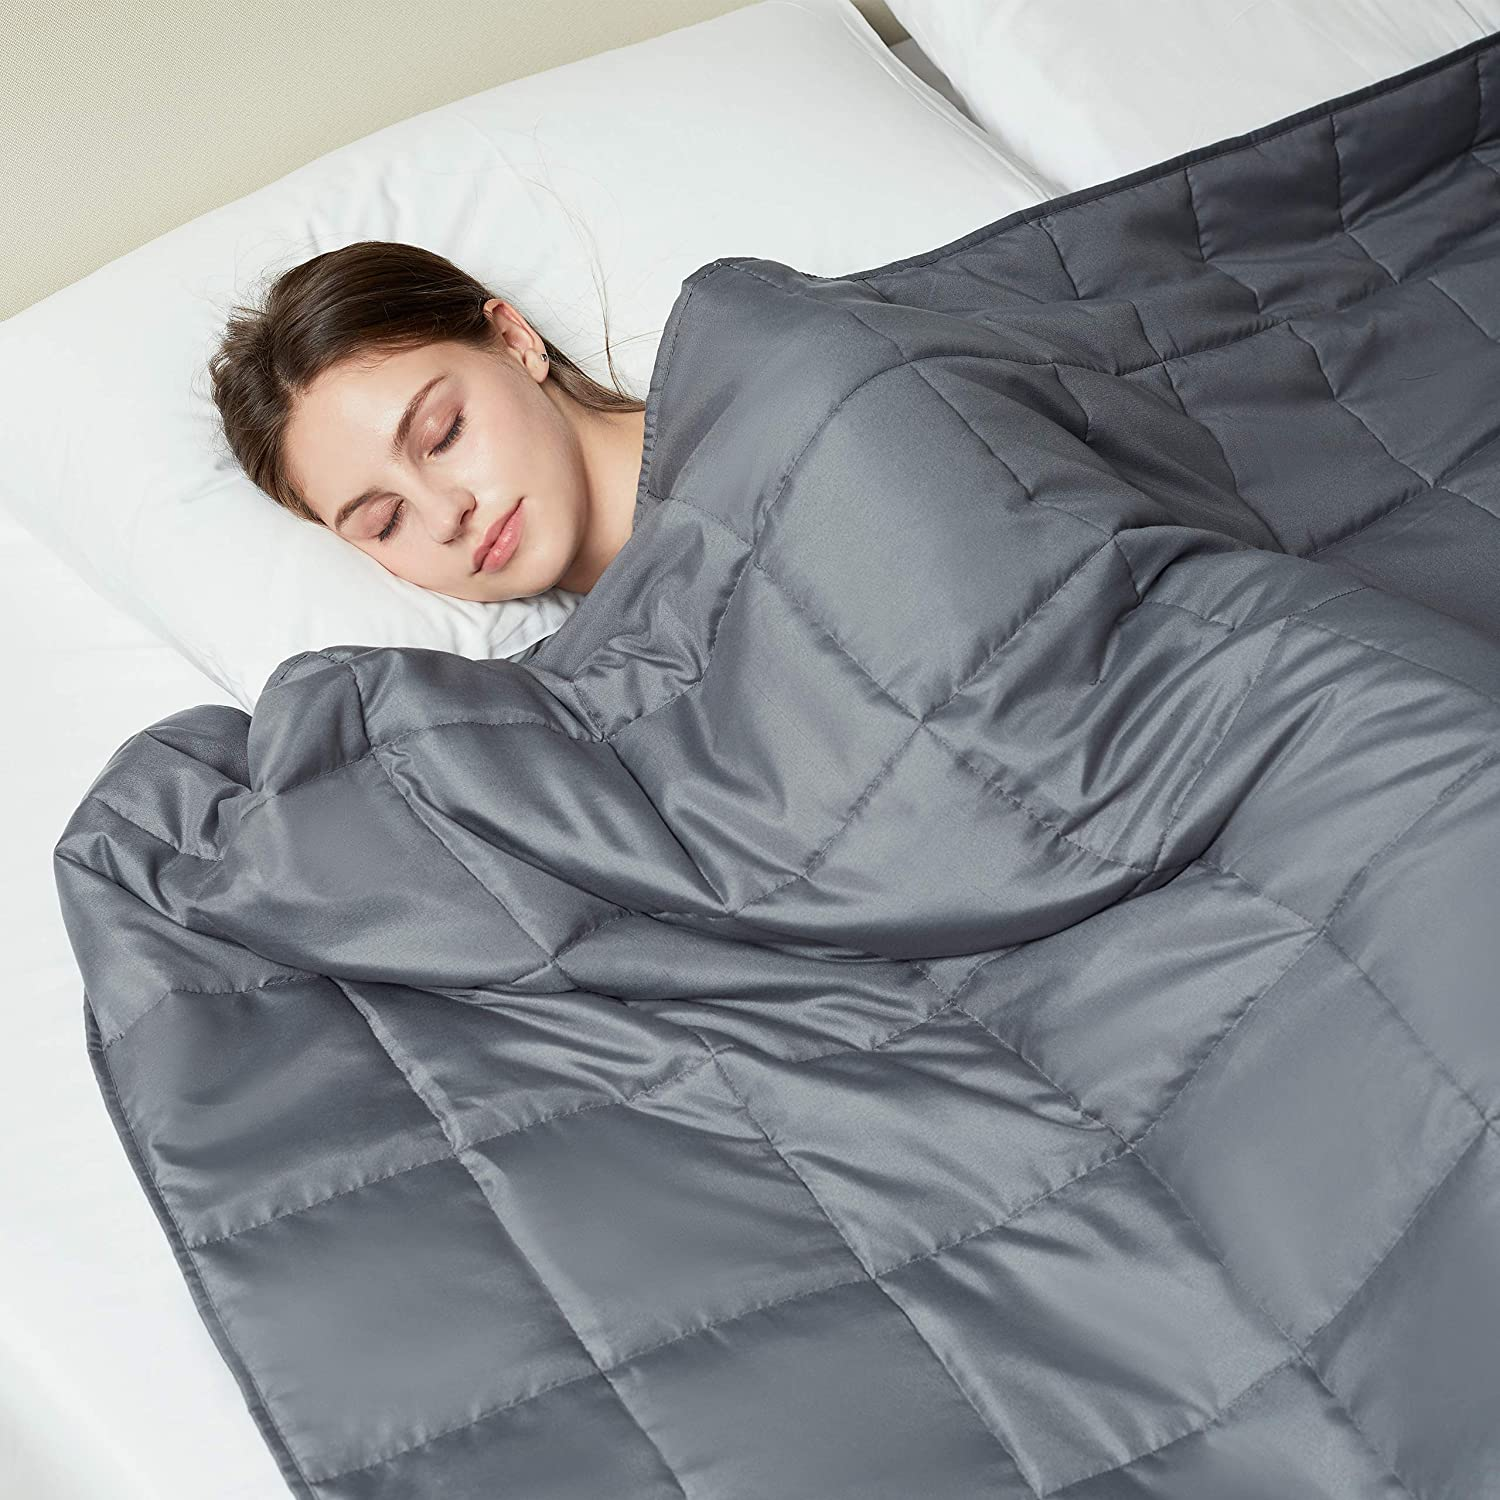 L LOVSOUL Weighted Blanket—with Premium 6 Glass Beads 2021 autumn and winter NEW before selling new Grey Dark